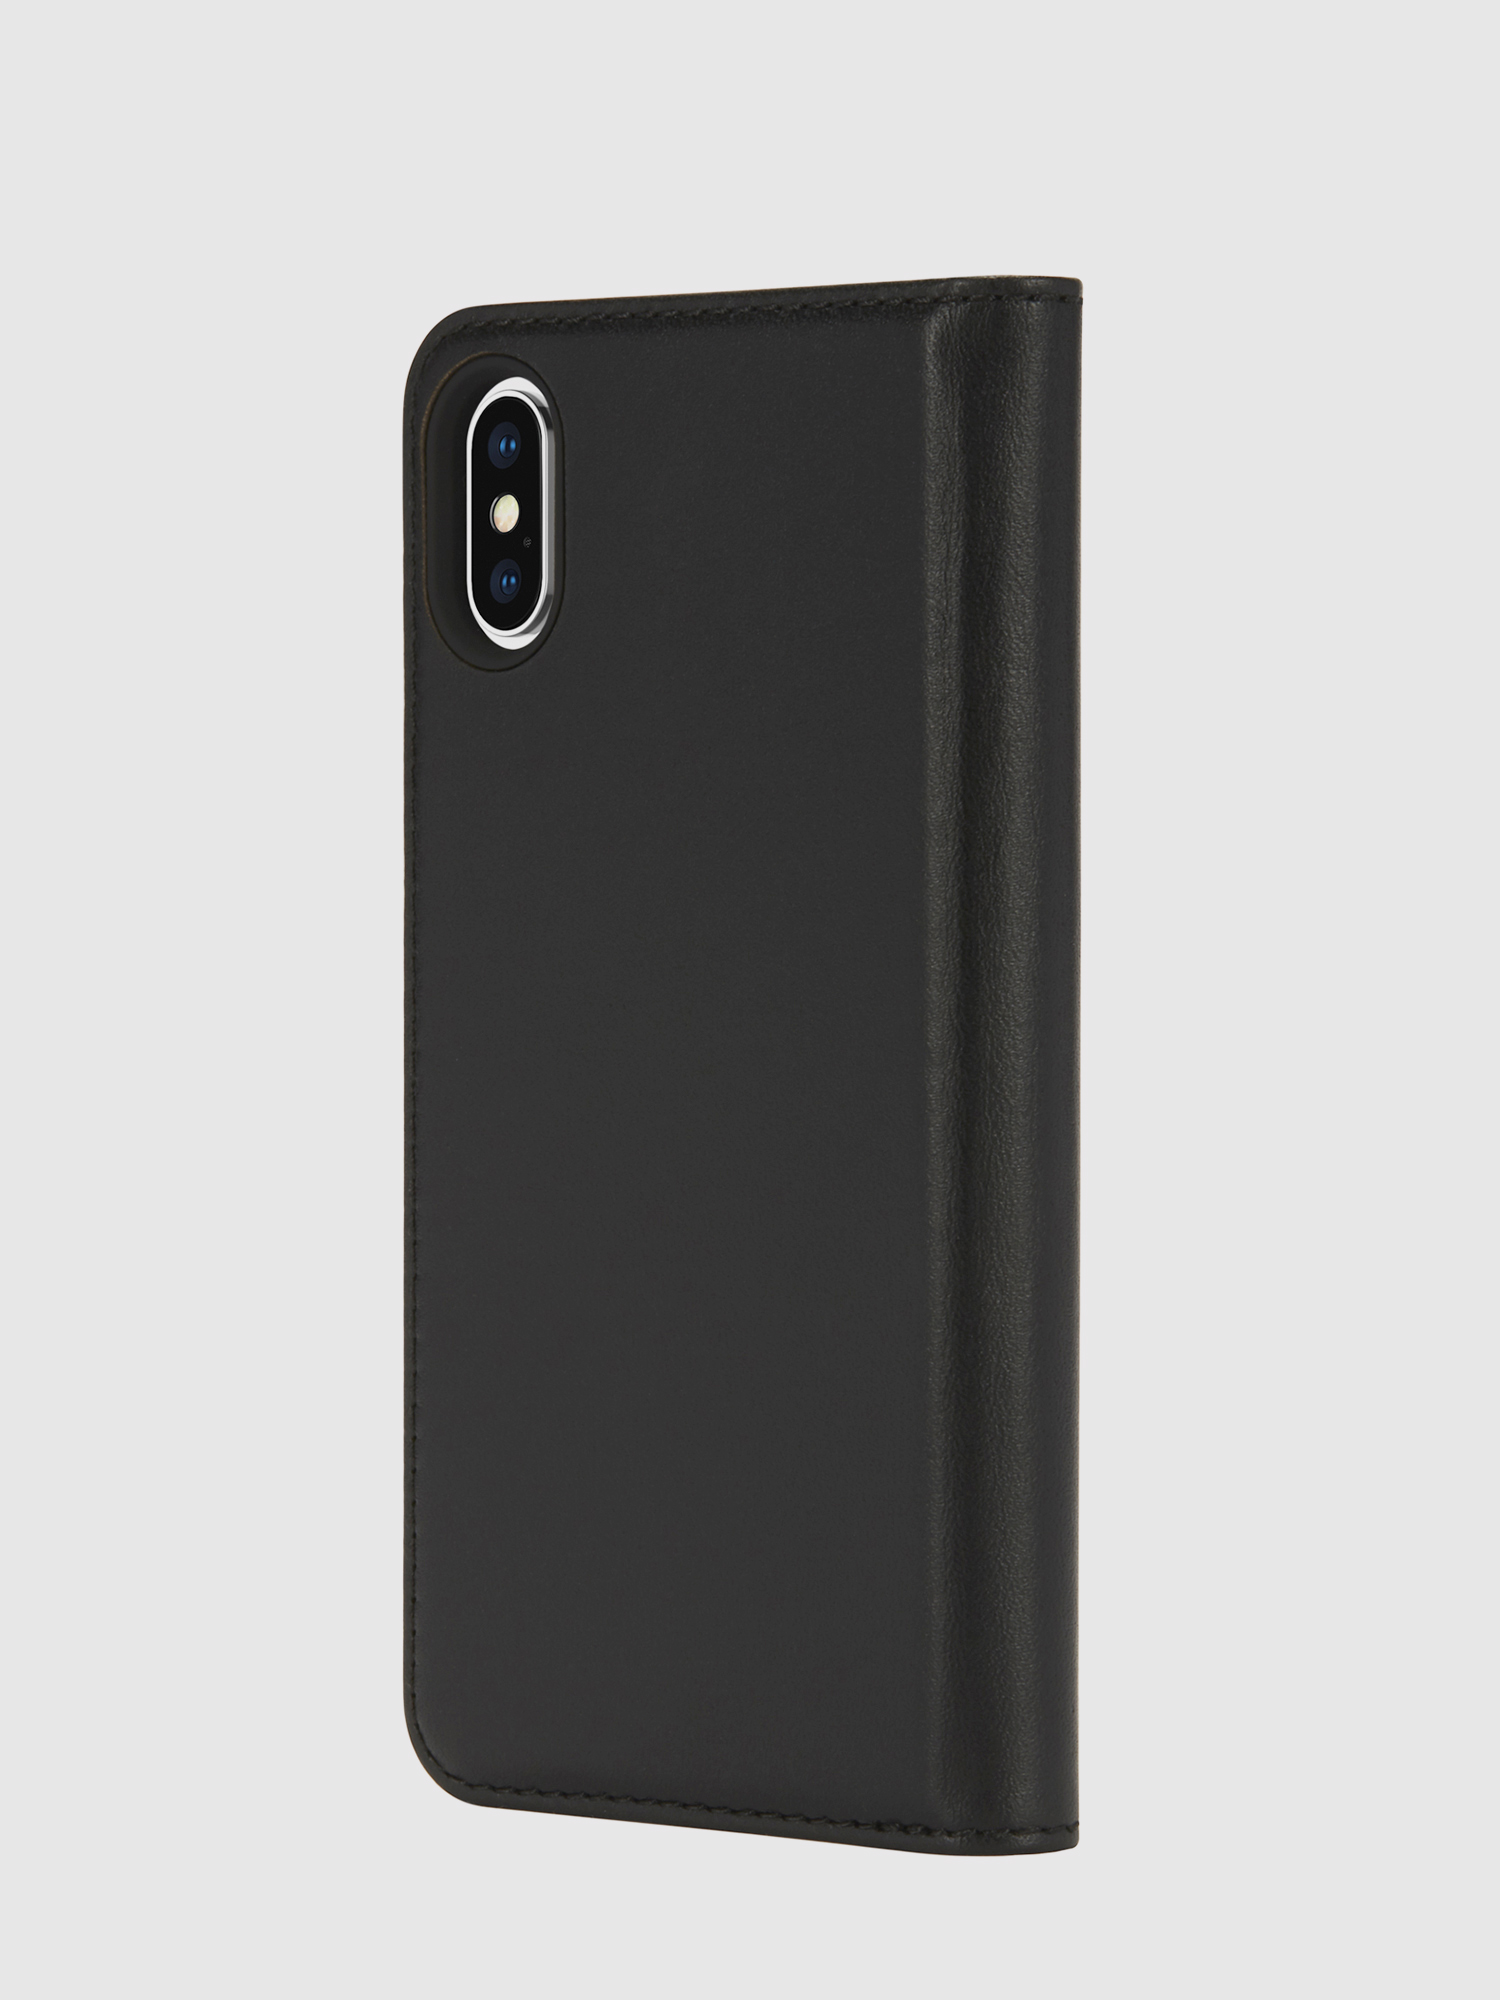 Diesel - SLIM LEATHER FOLIO IPHONE X,  - Flip covers - Image 3